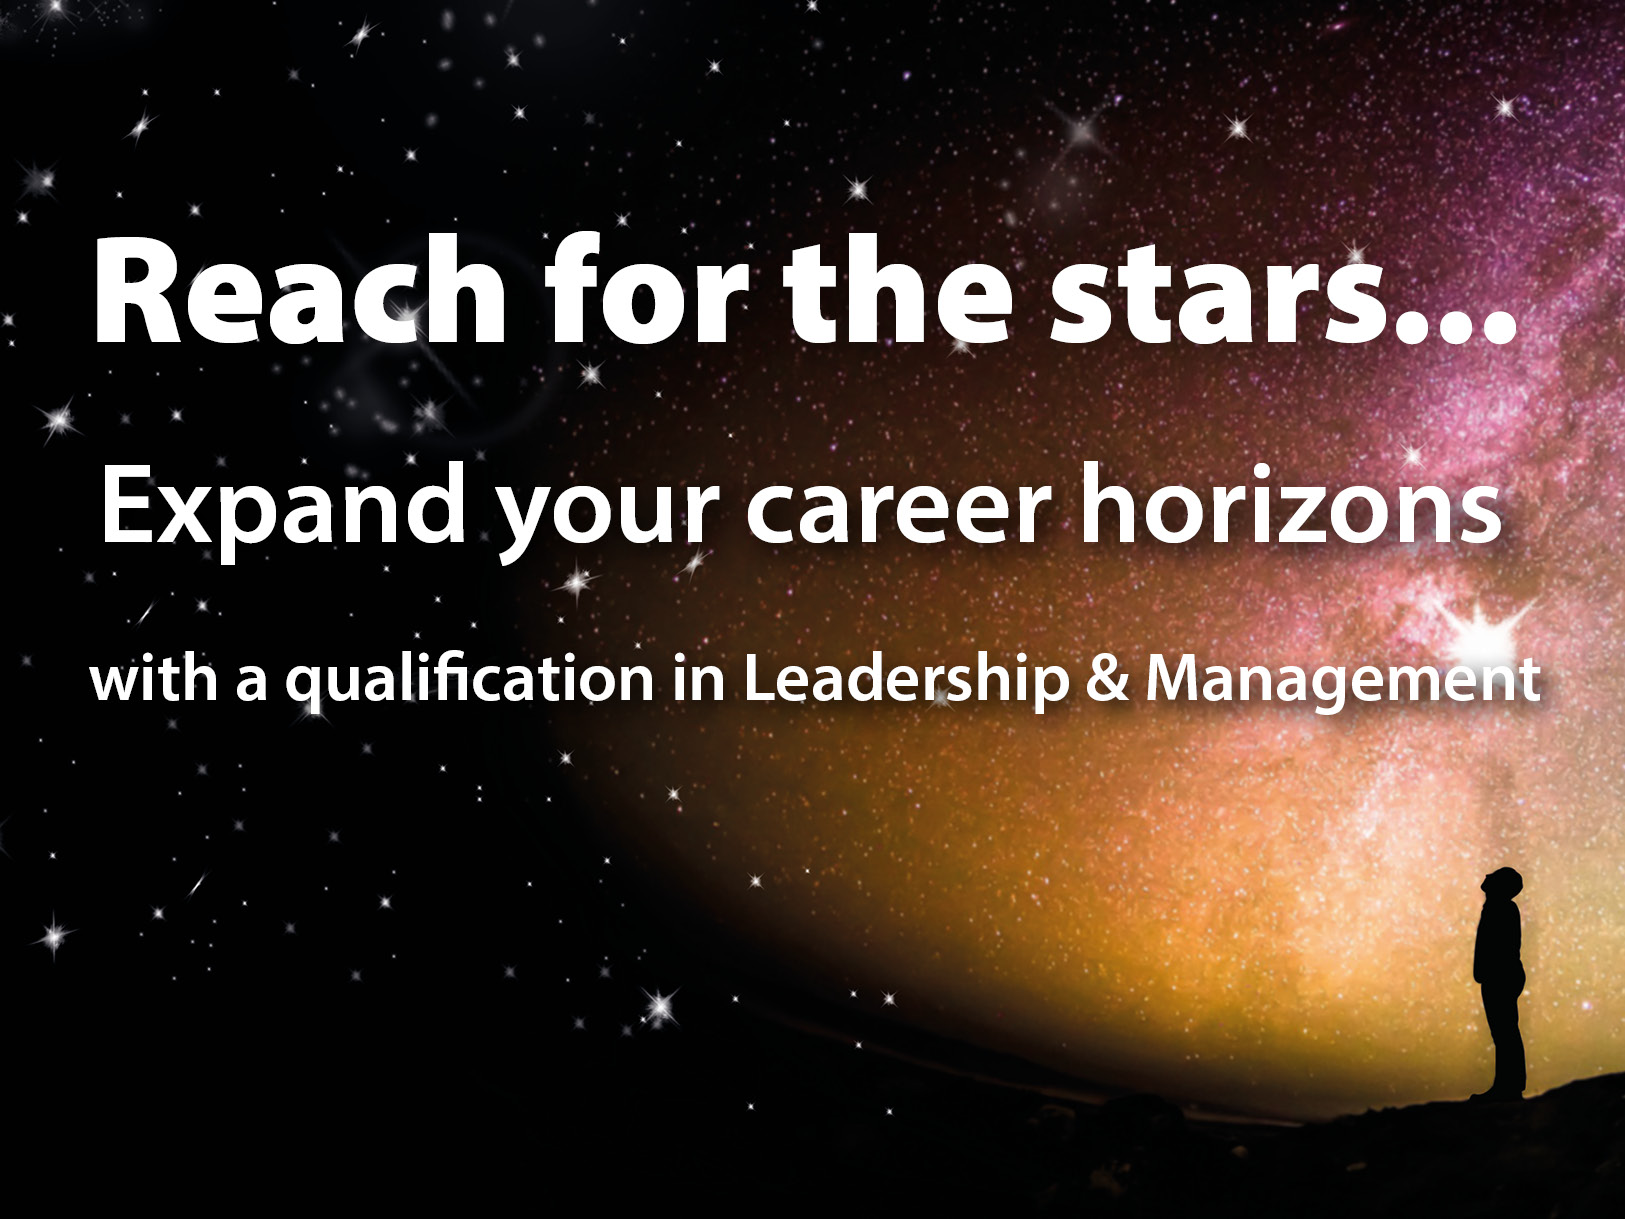 Expand your career horizons with a qualification in Leadership & Management